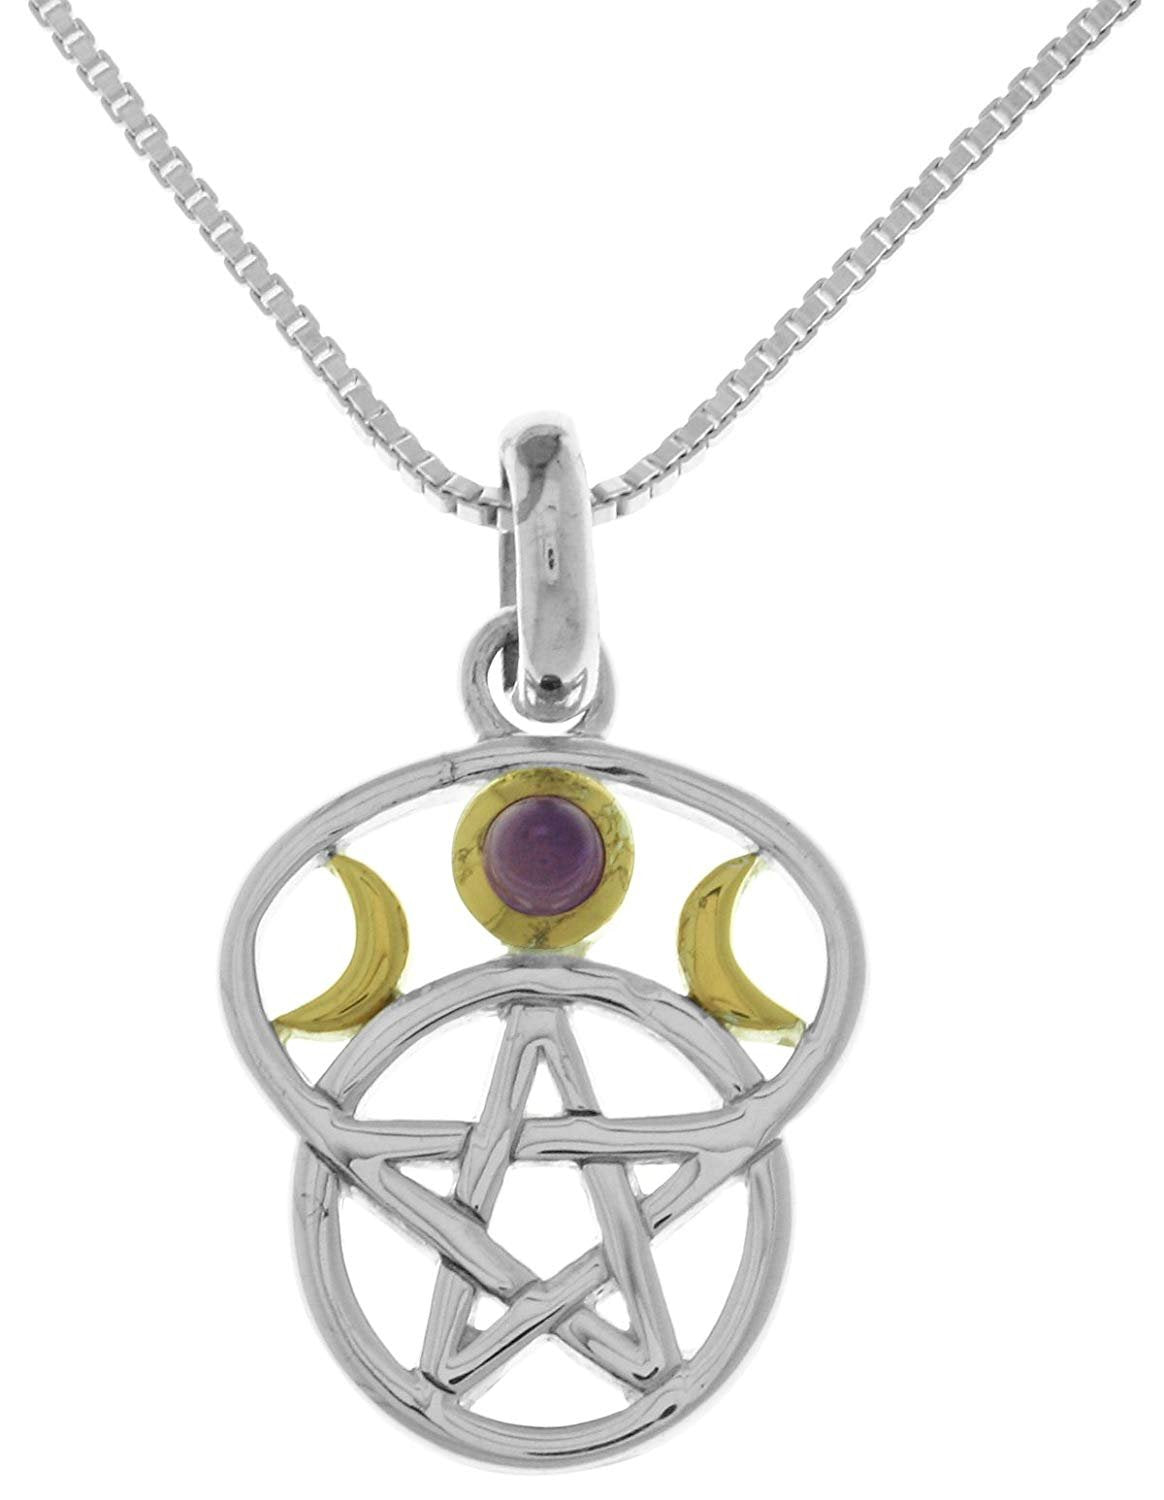 Jewelry Trends Sterling Silver Moon Goddess Pentacle Pendant with Amethyst on 18 Inch Box Chain Necklace